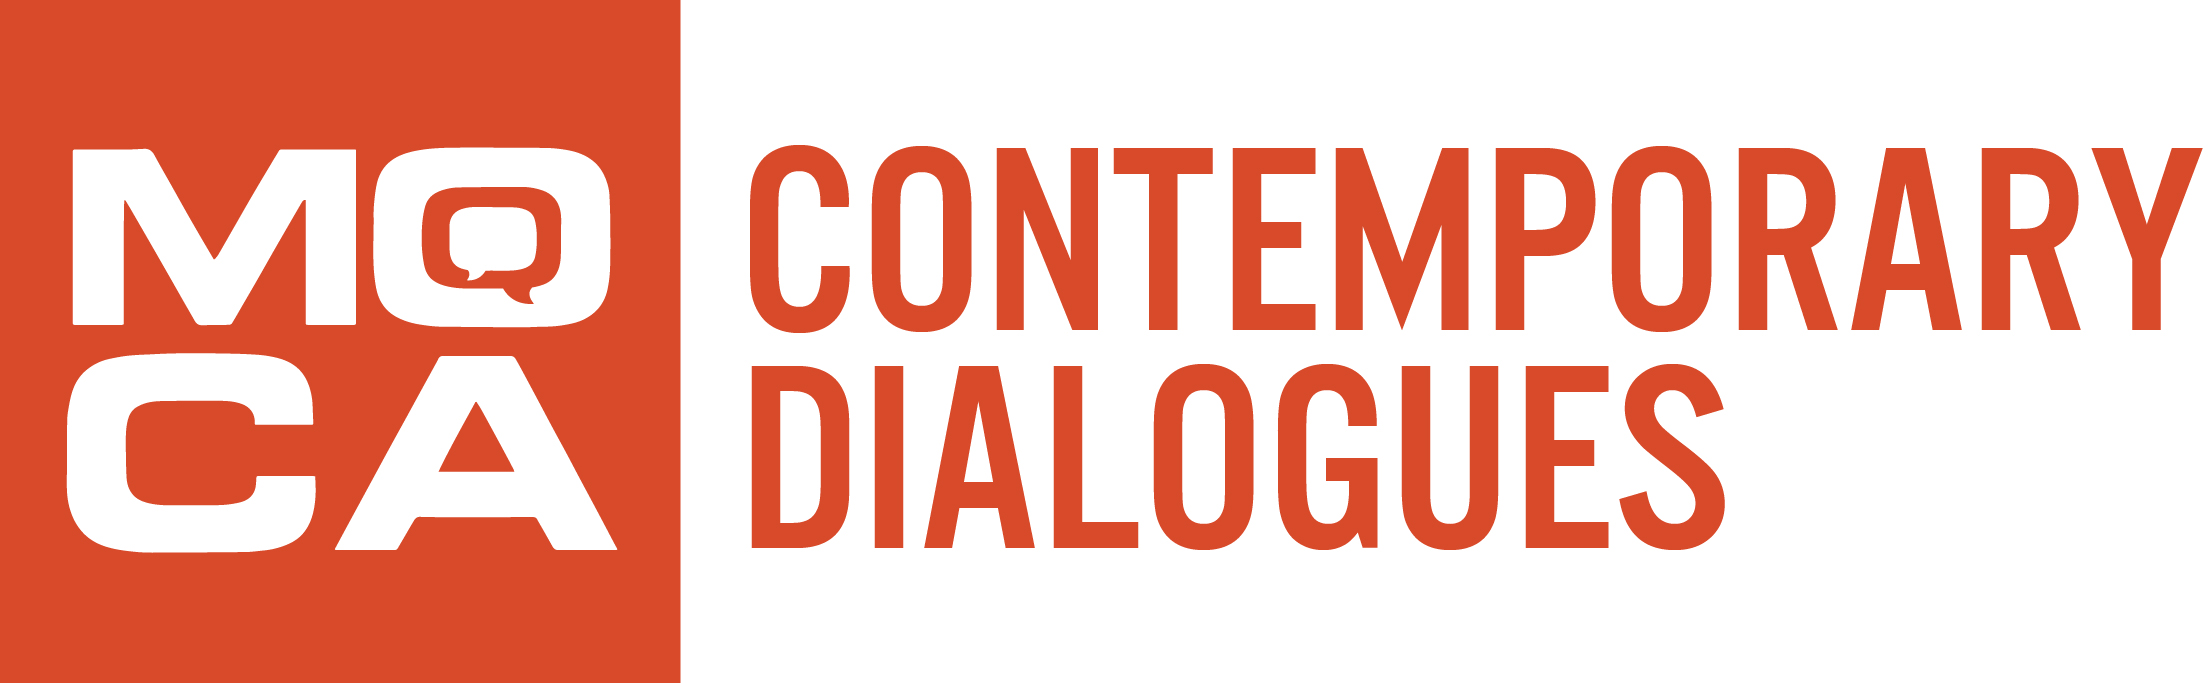 Contemporary Dialogues: Caribbean influences on Performance Art in Miami